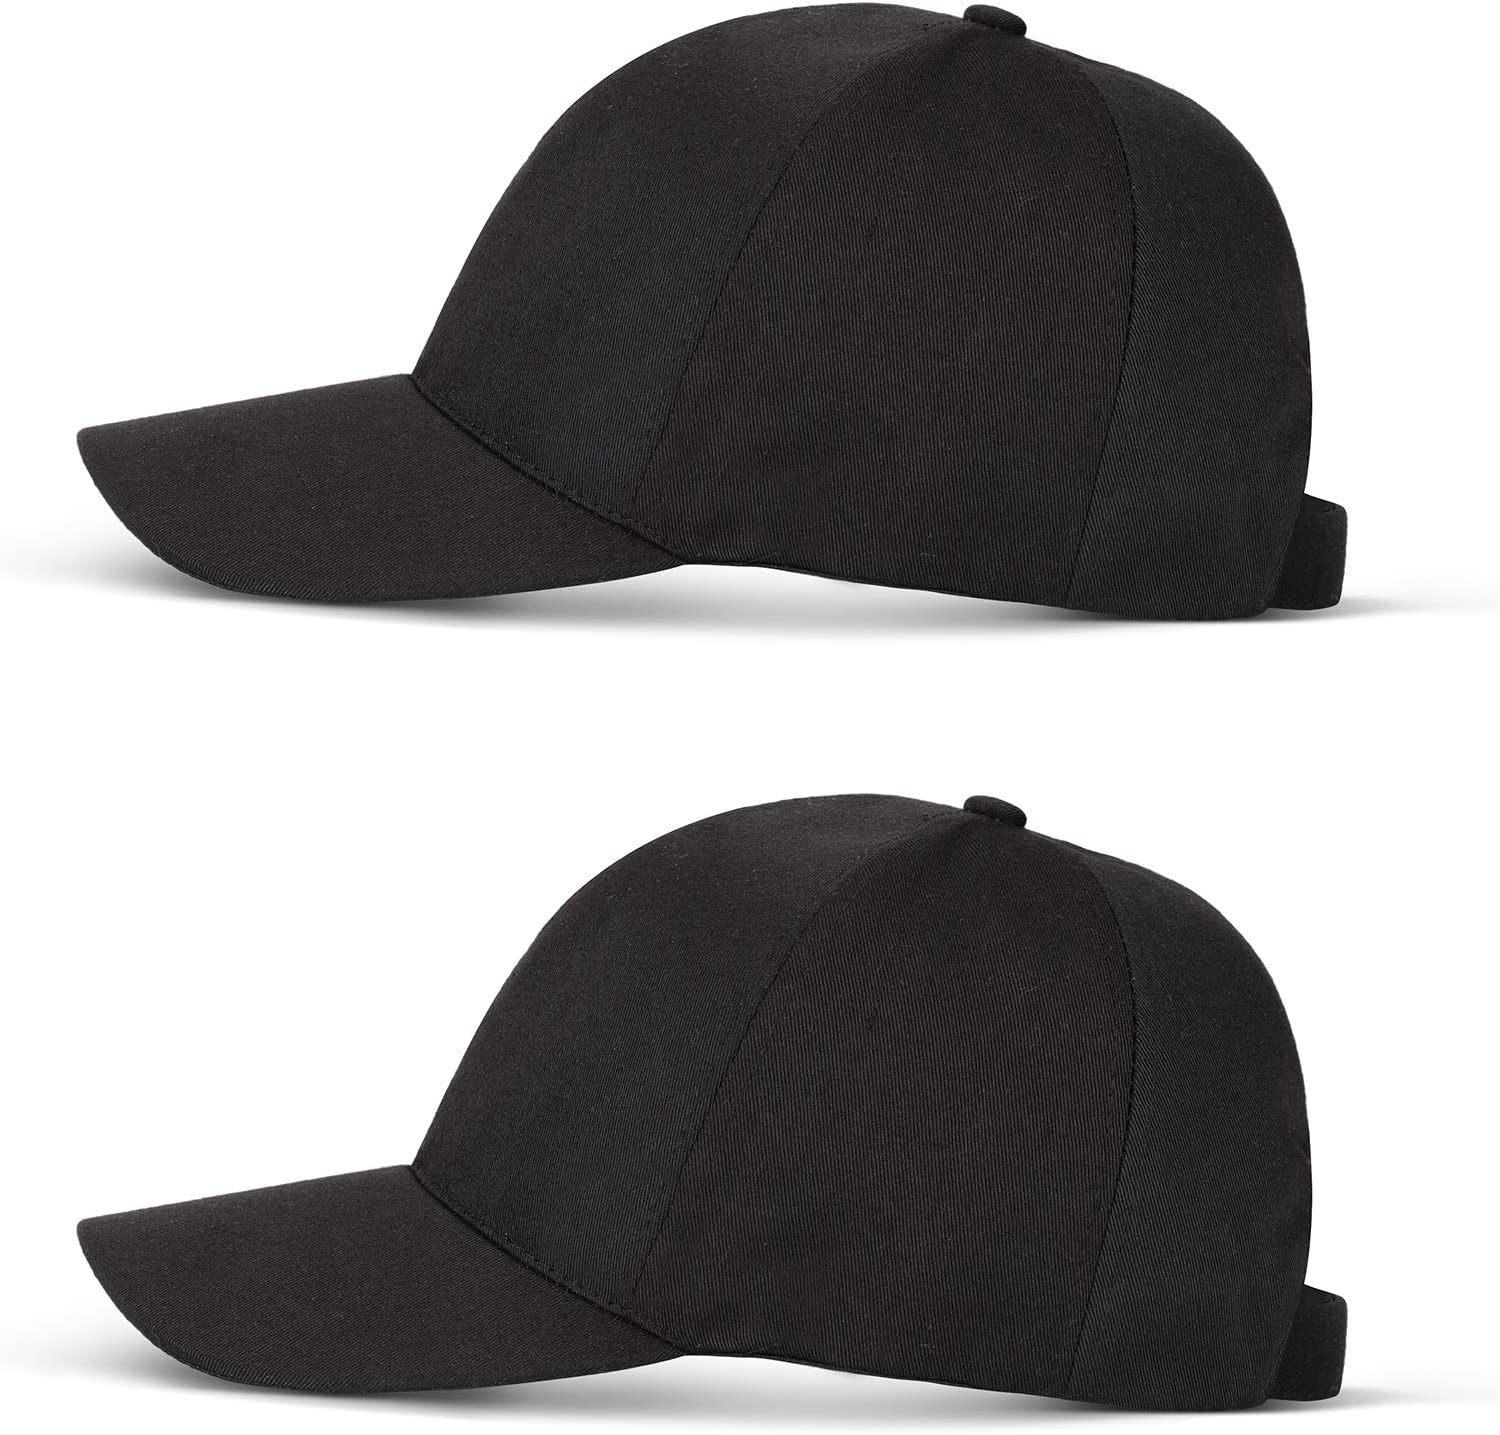 SATINIOR 2 Pieces Full Face Baseball Cap with Removable Cover for Men Women Indoor Outdoor Activities Black